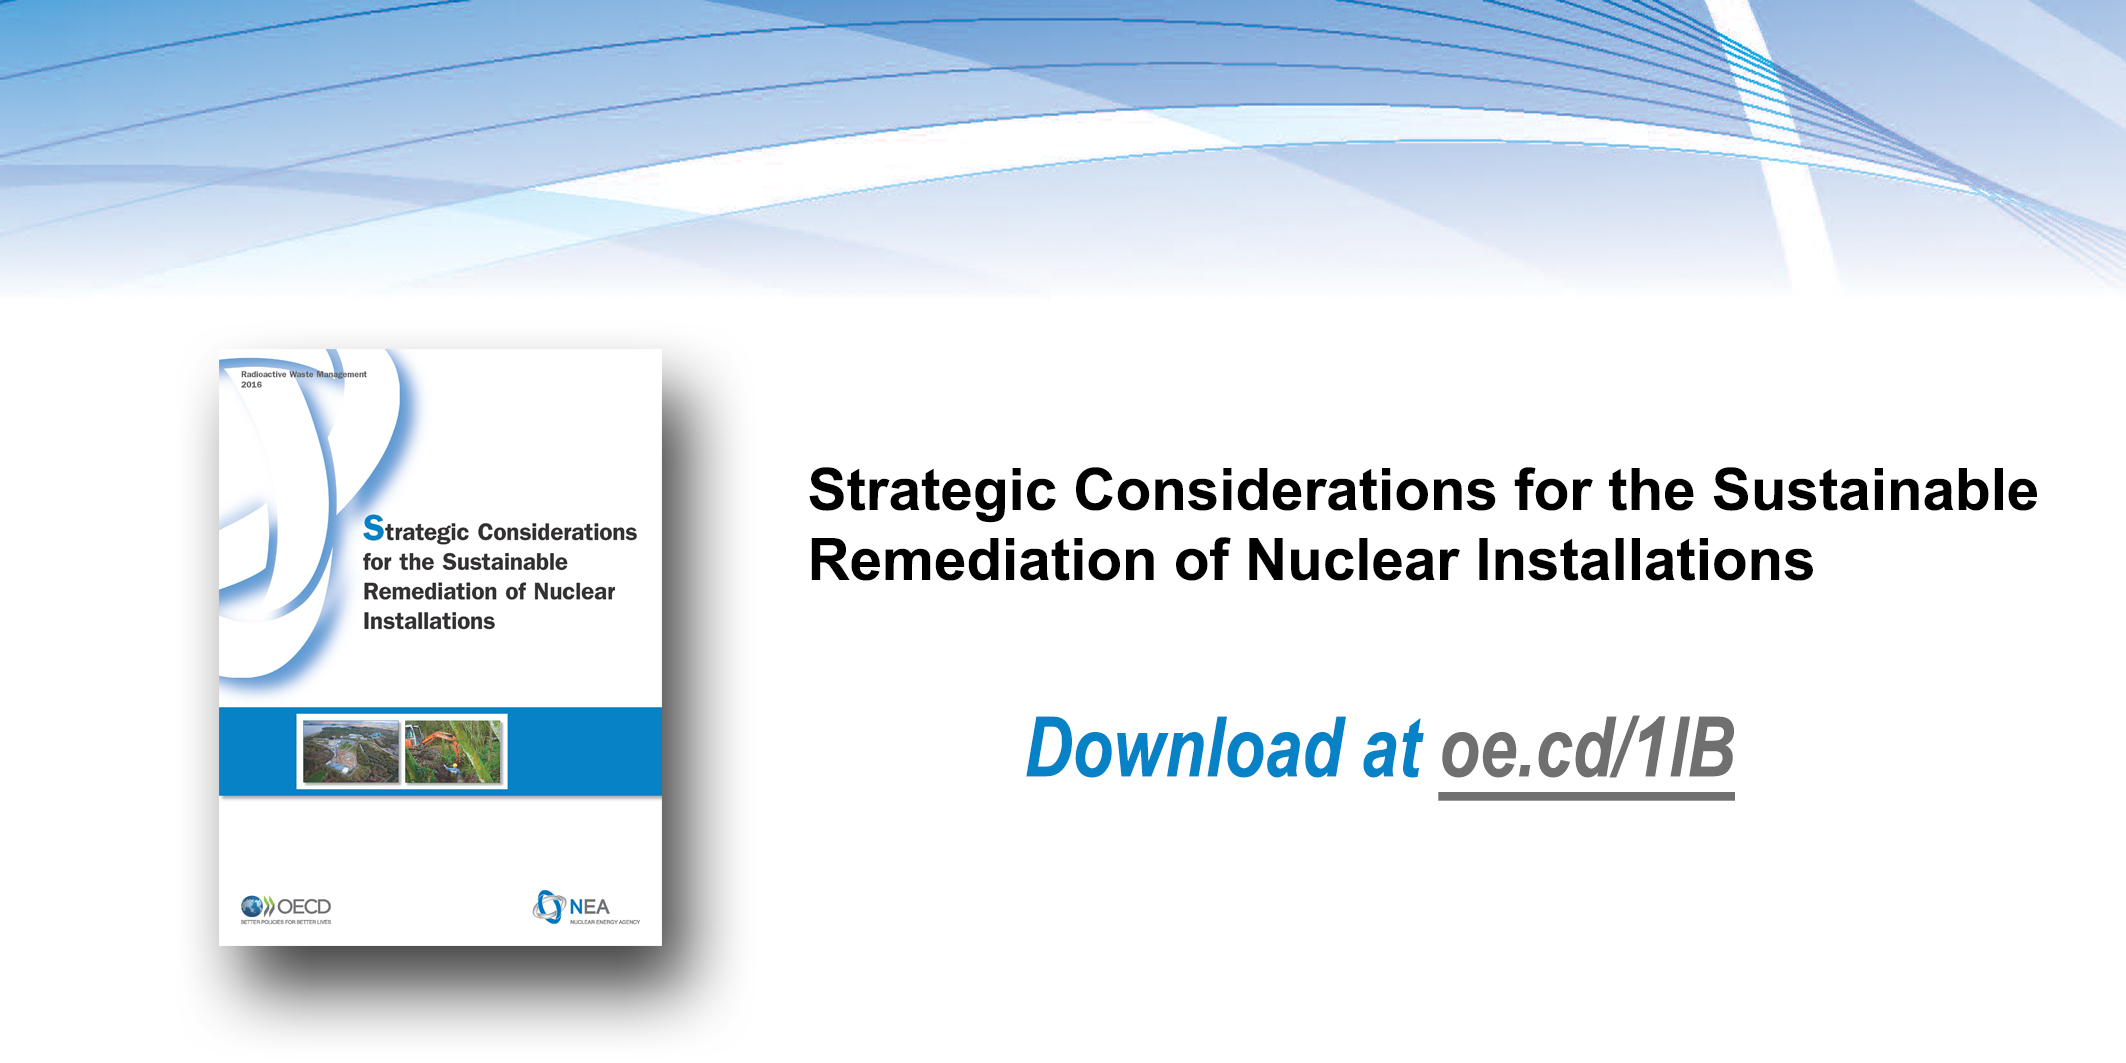 Strategic Considerations for the Sustainable Remediation of Nuclear Installations